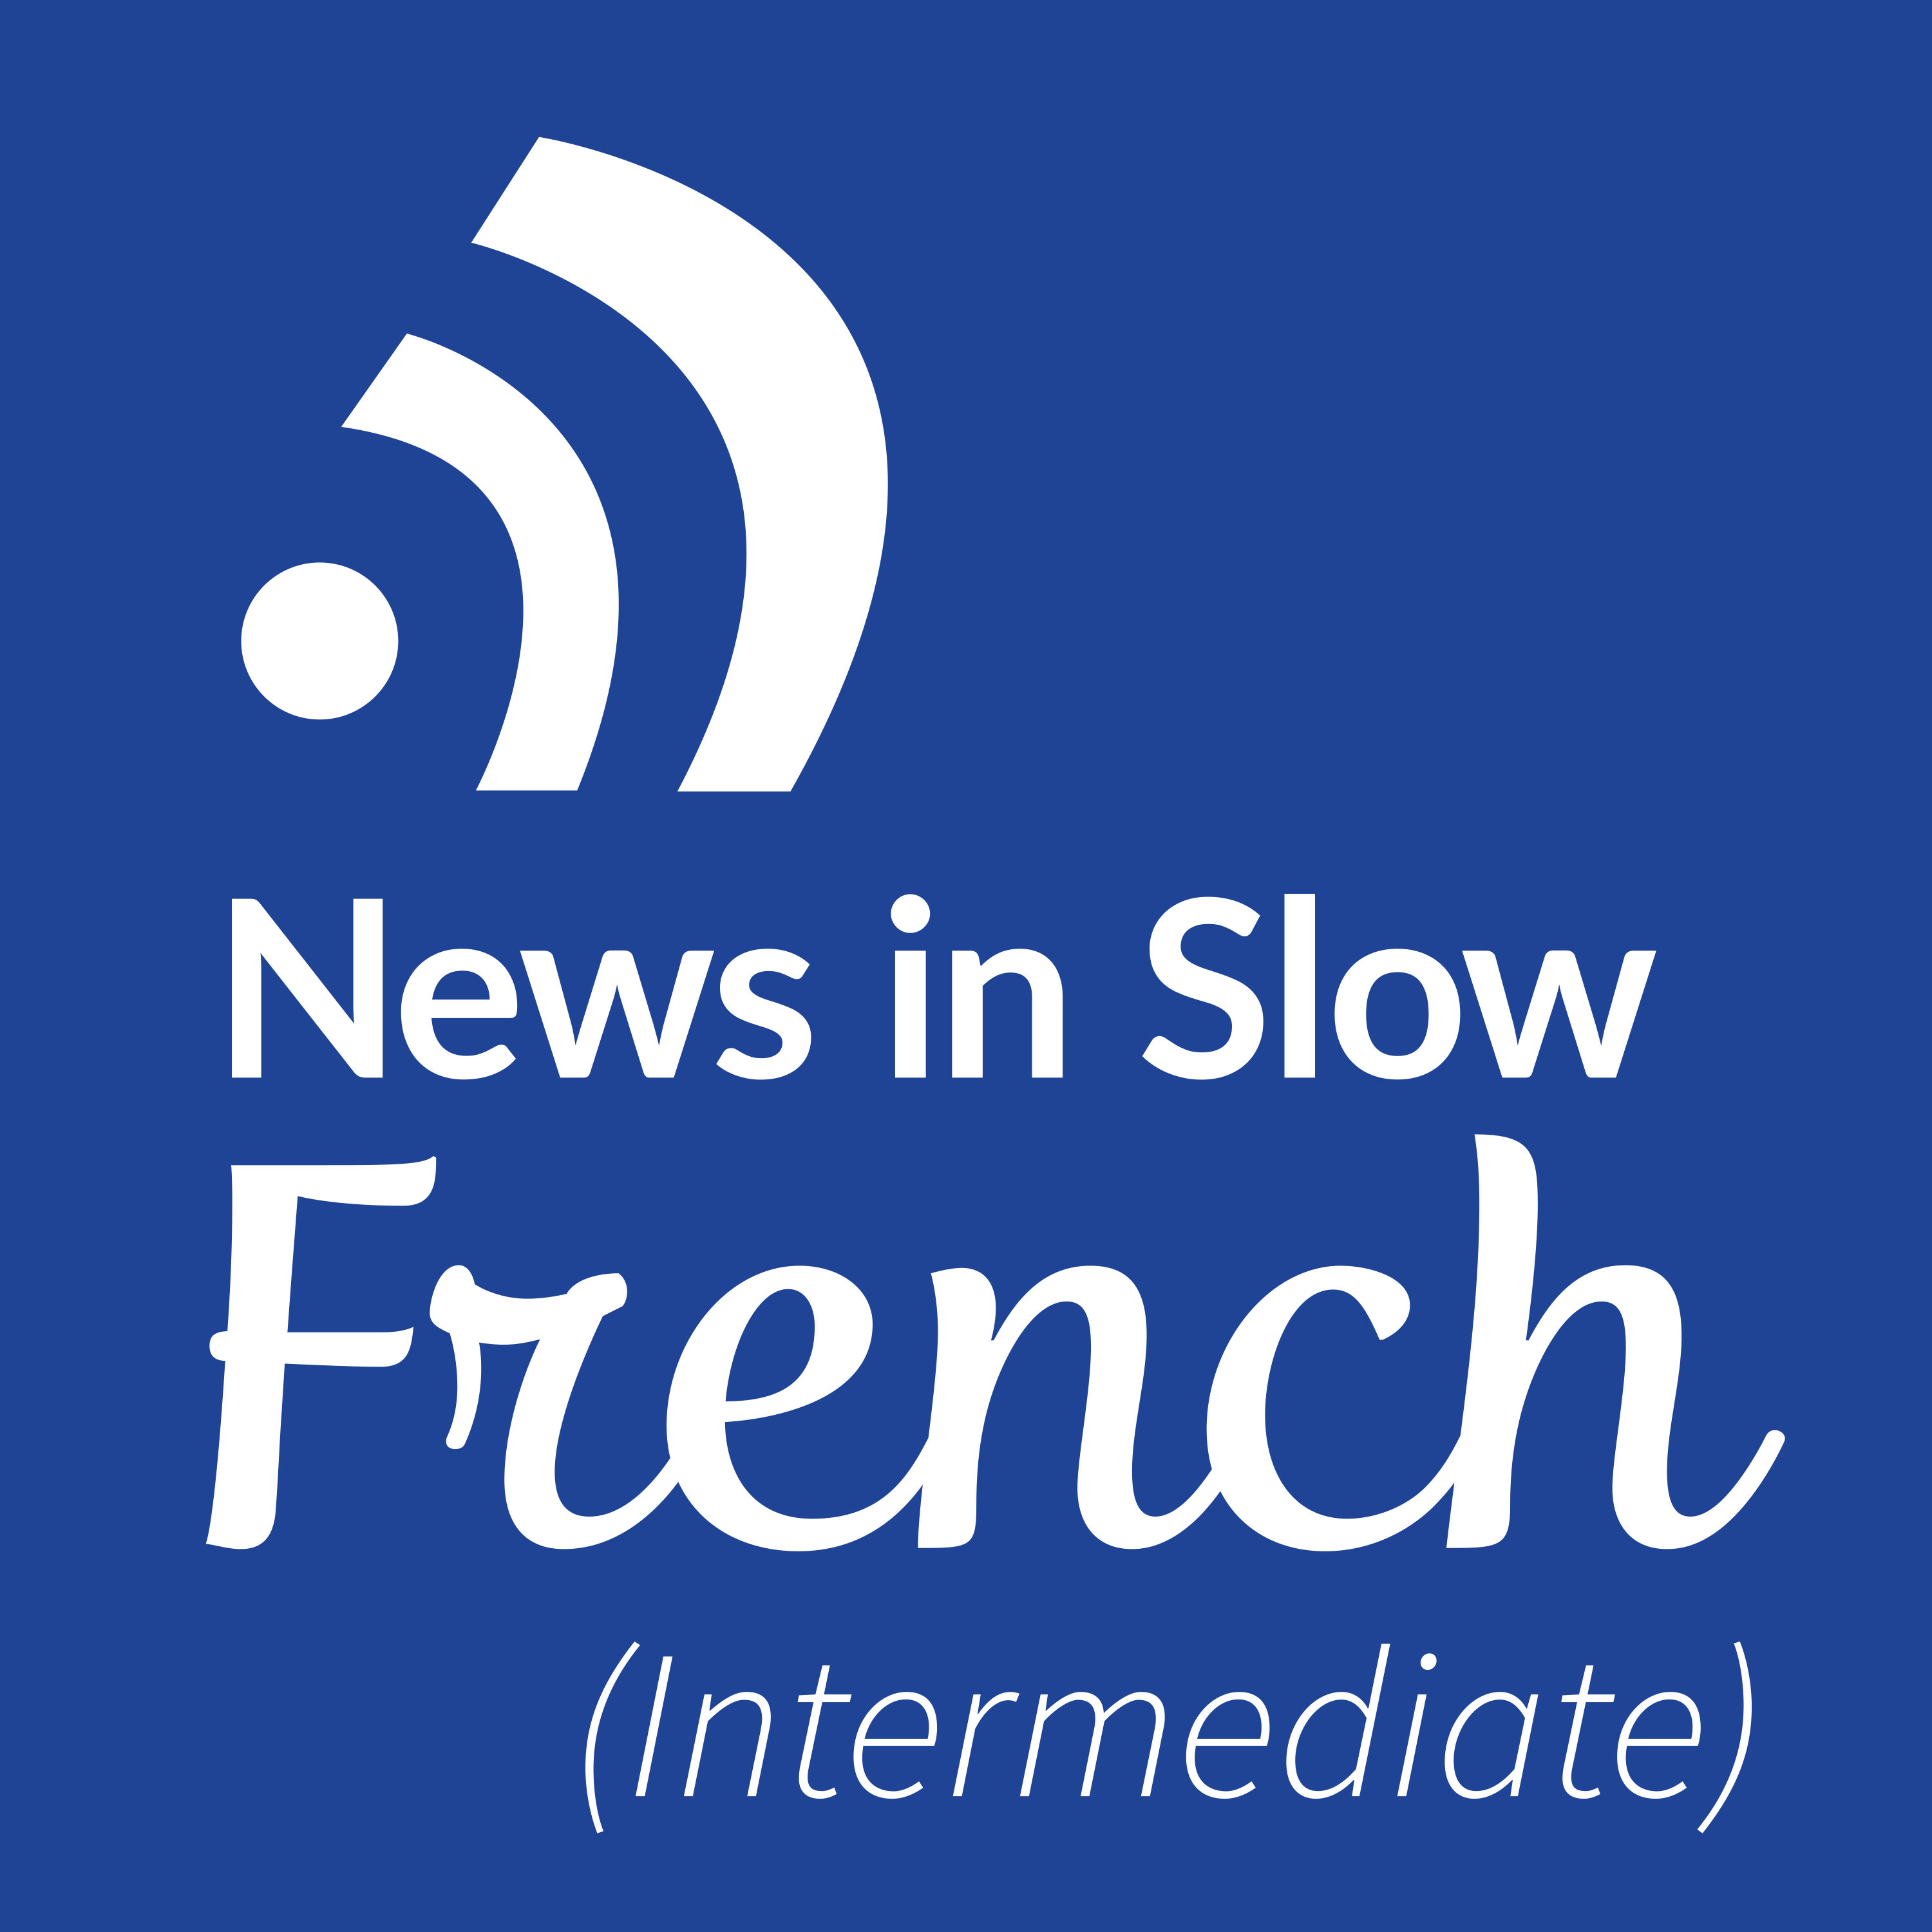 News in Slow French #299 - Learn French through current events